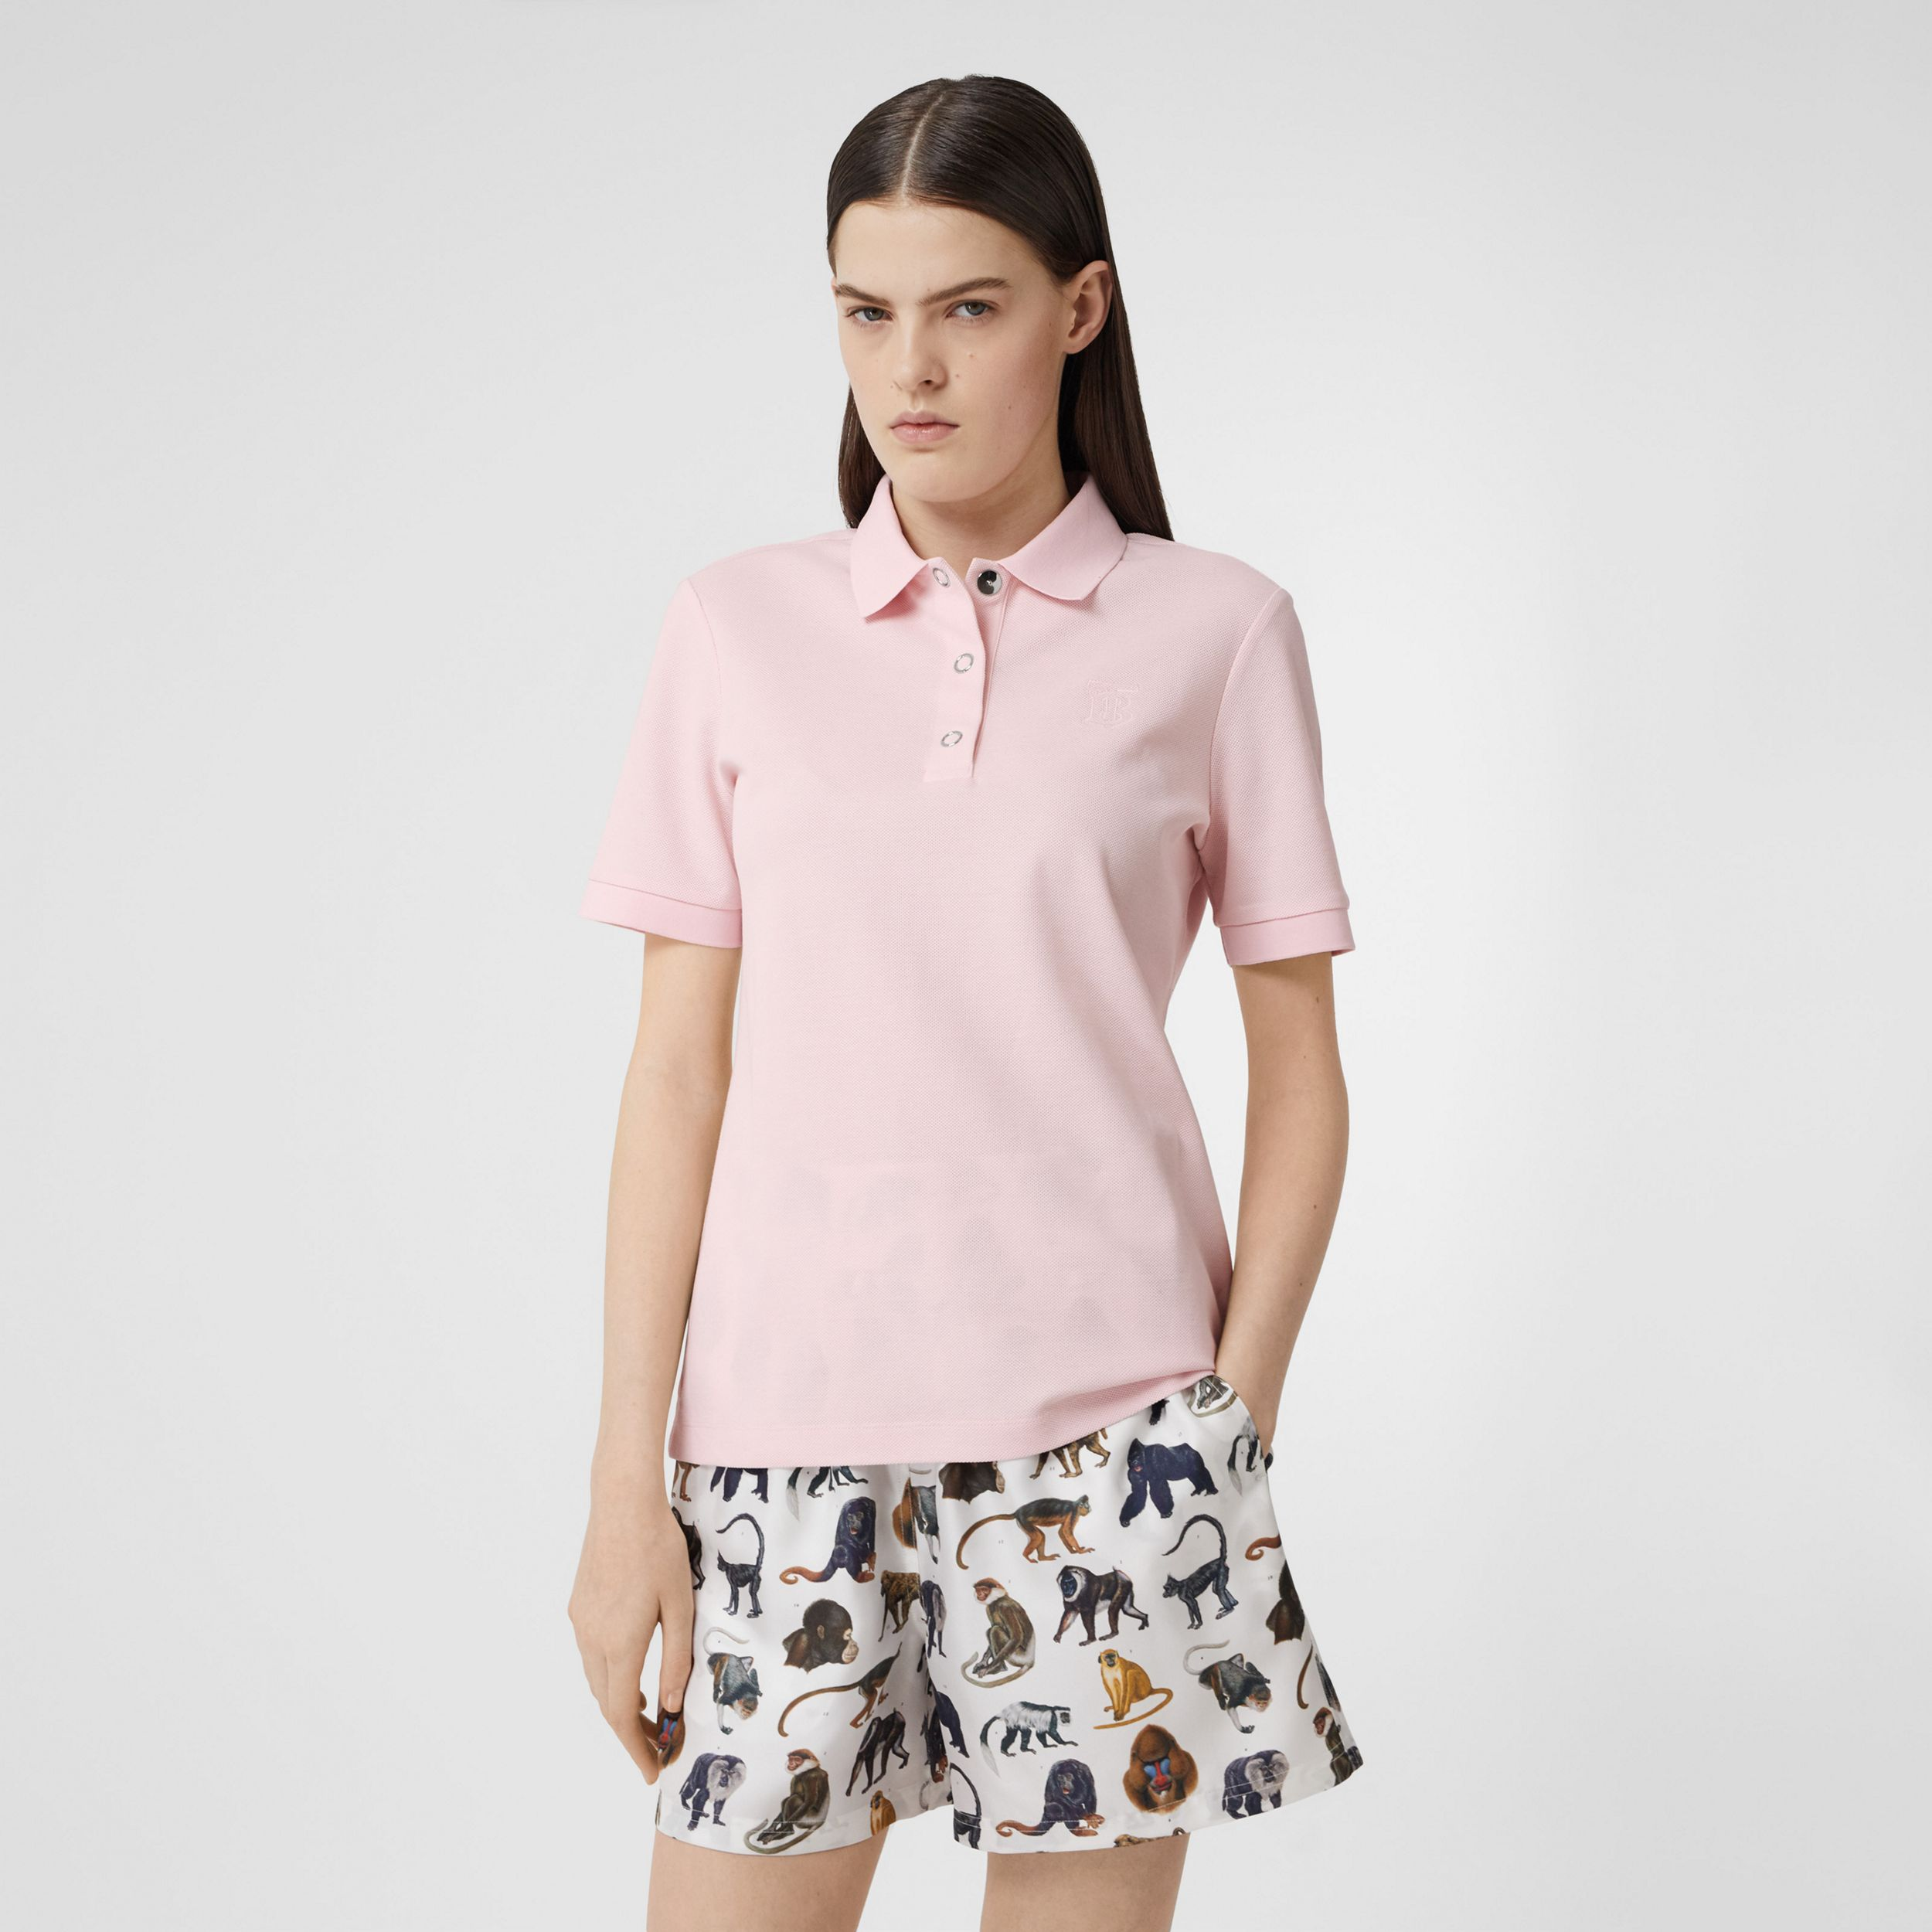 Monogram Motif Cotton Piqué Polo Shirt in Alabaster Pink - Women | Burberry - 1